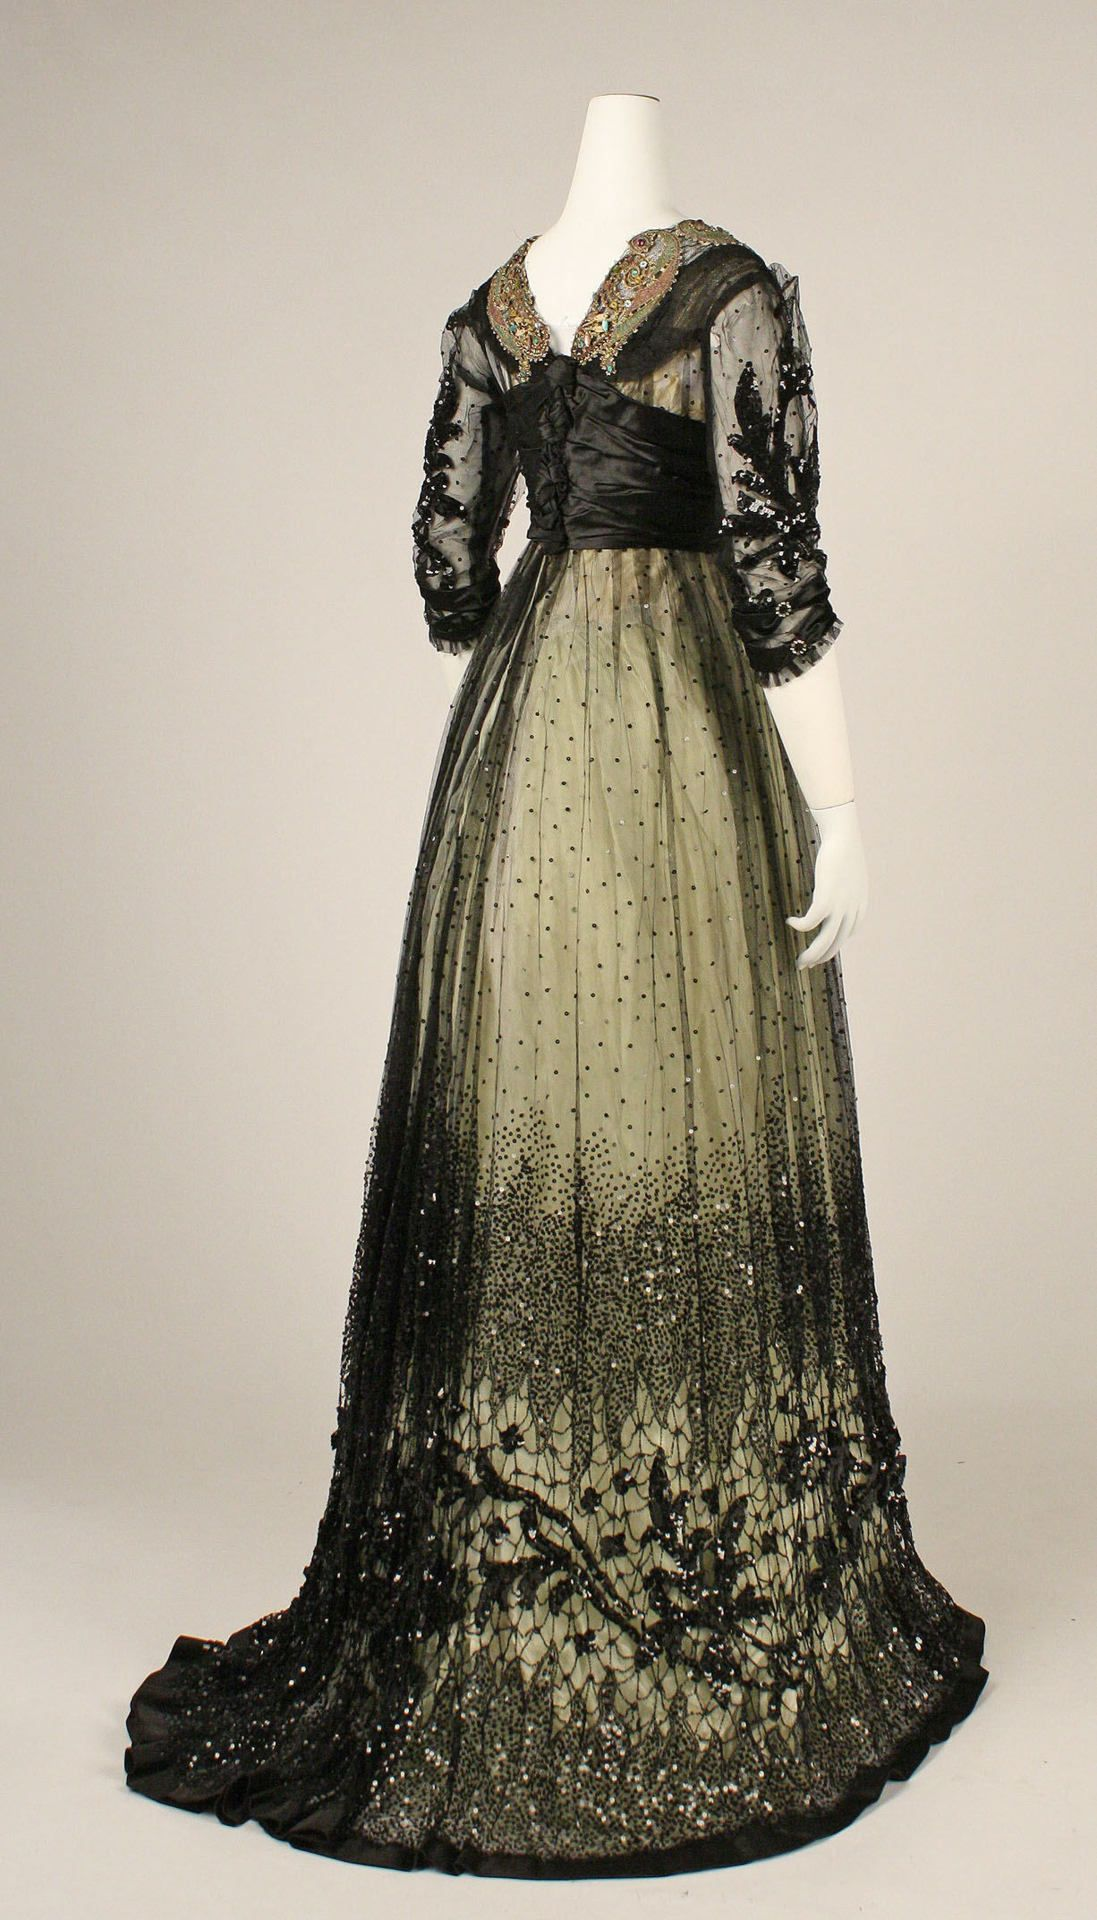 Ball Gown Dresses in 1908